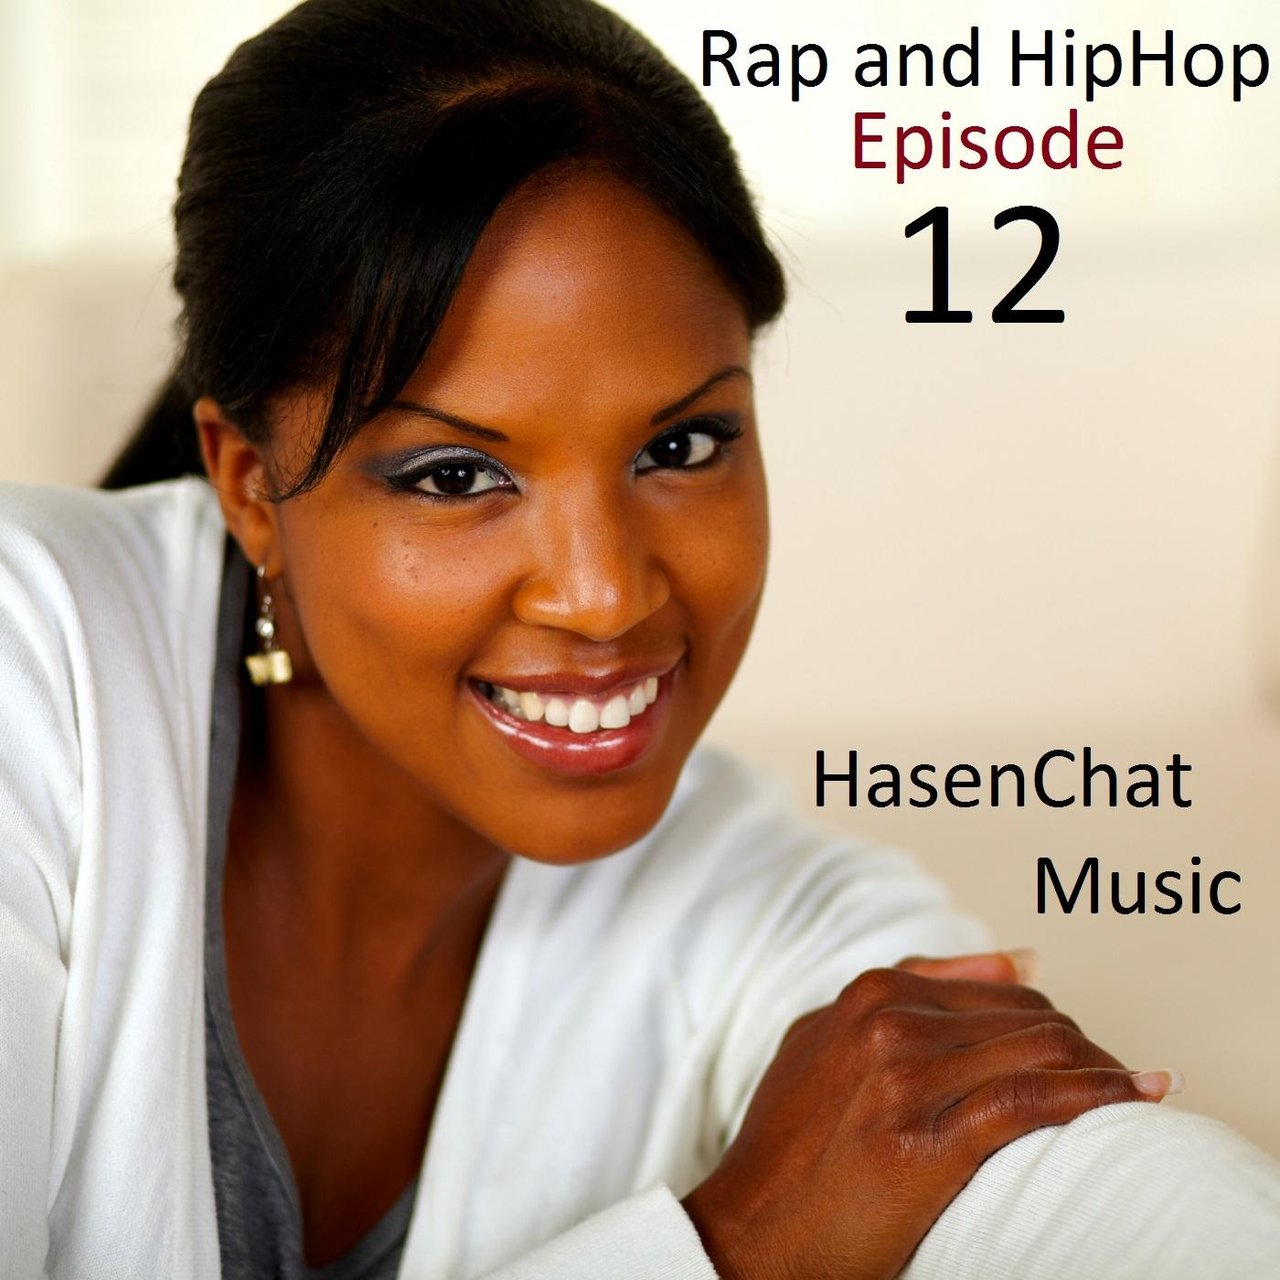 Rap and Hip Hop: Episode 12